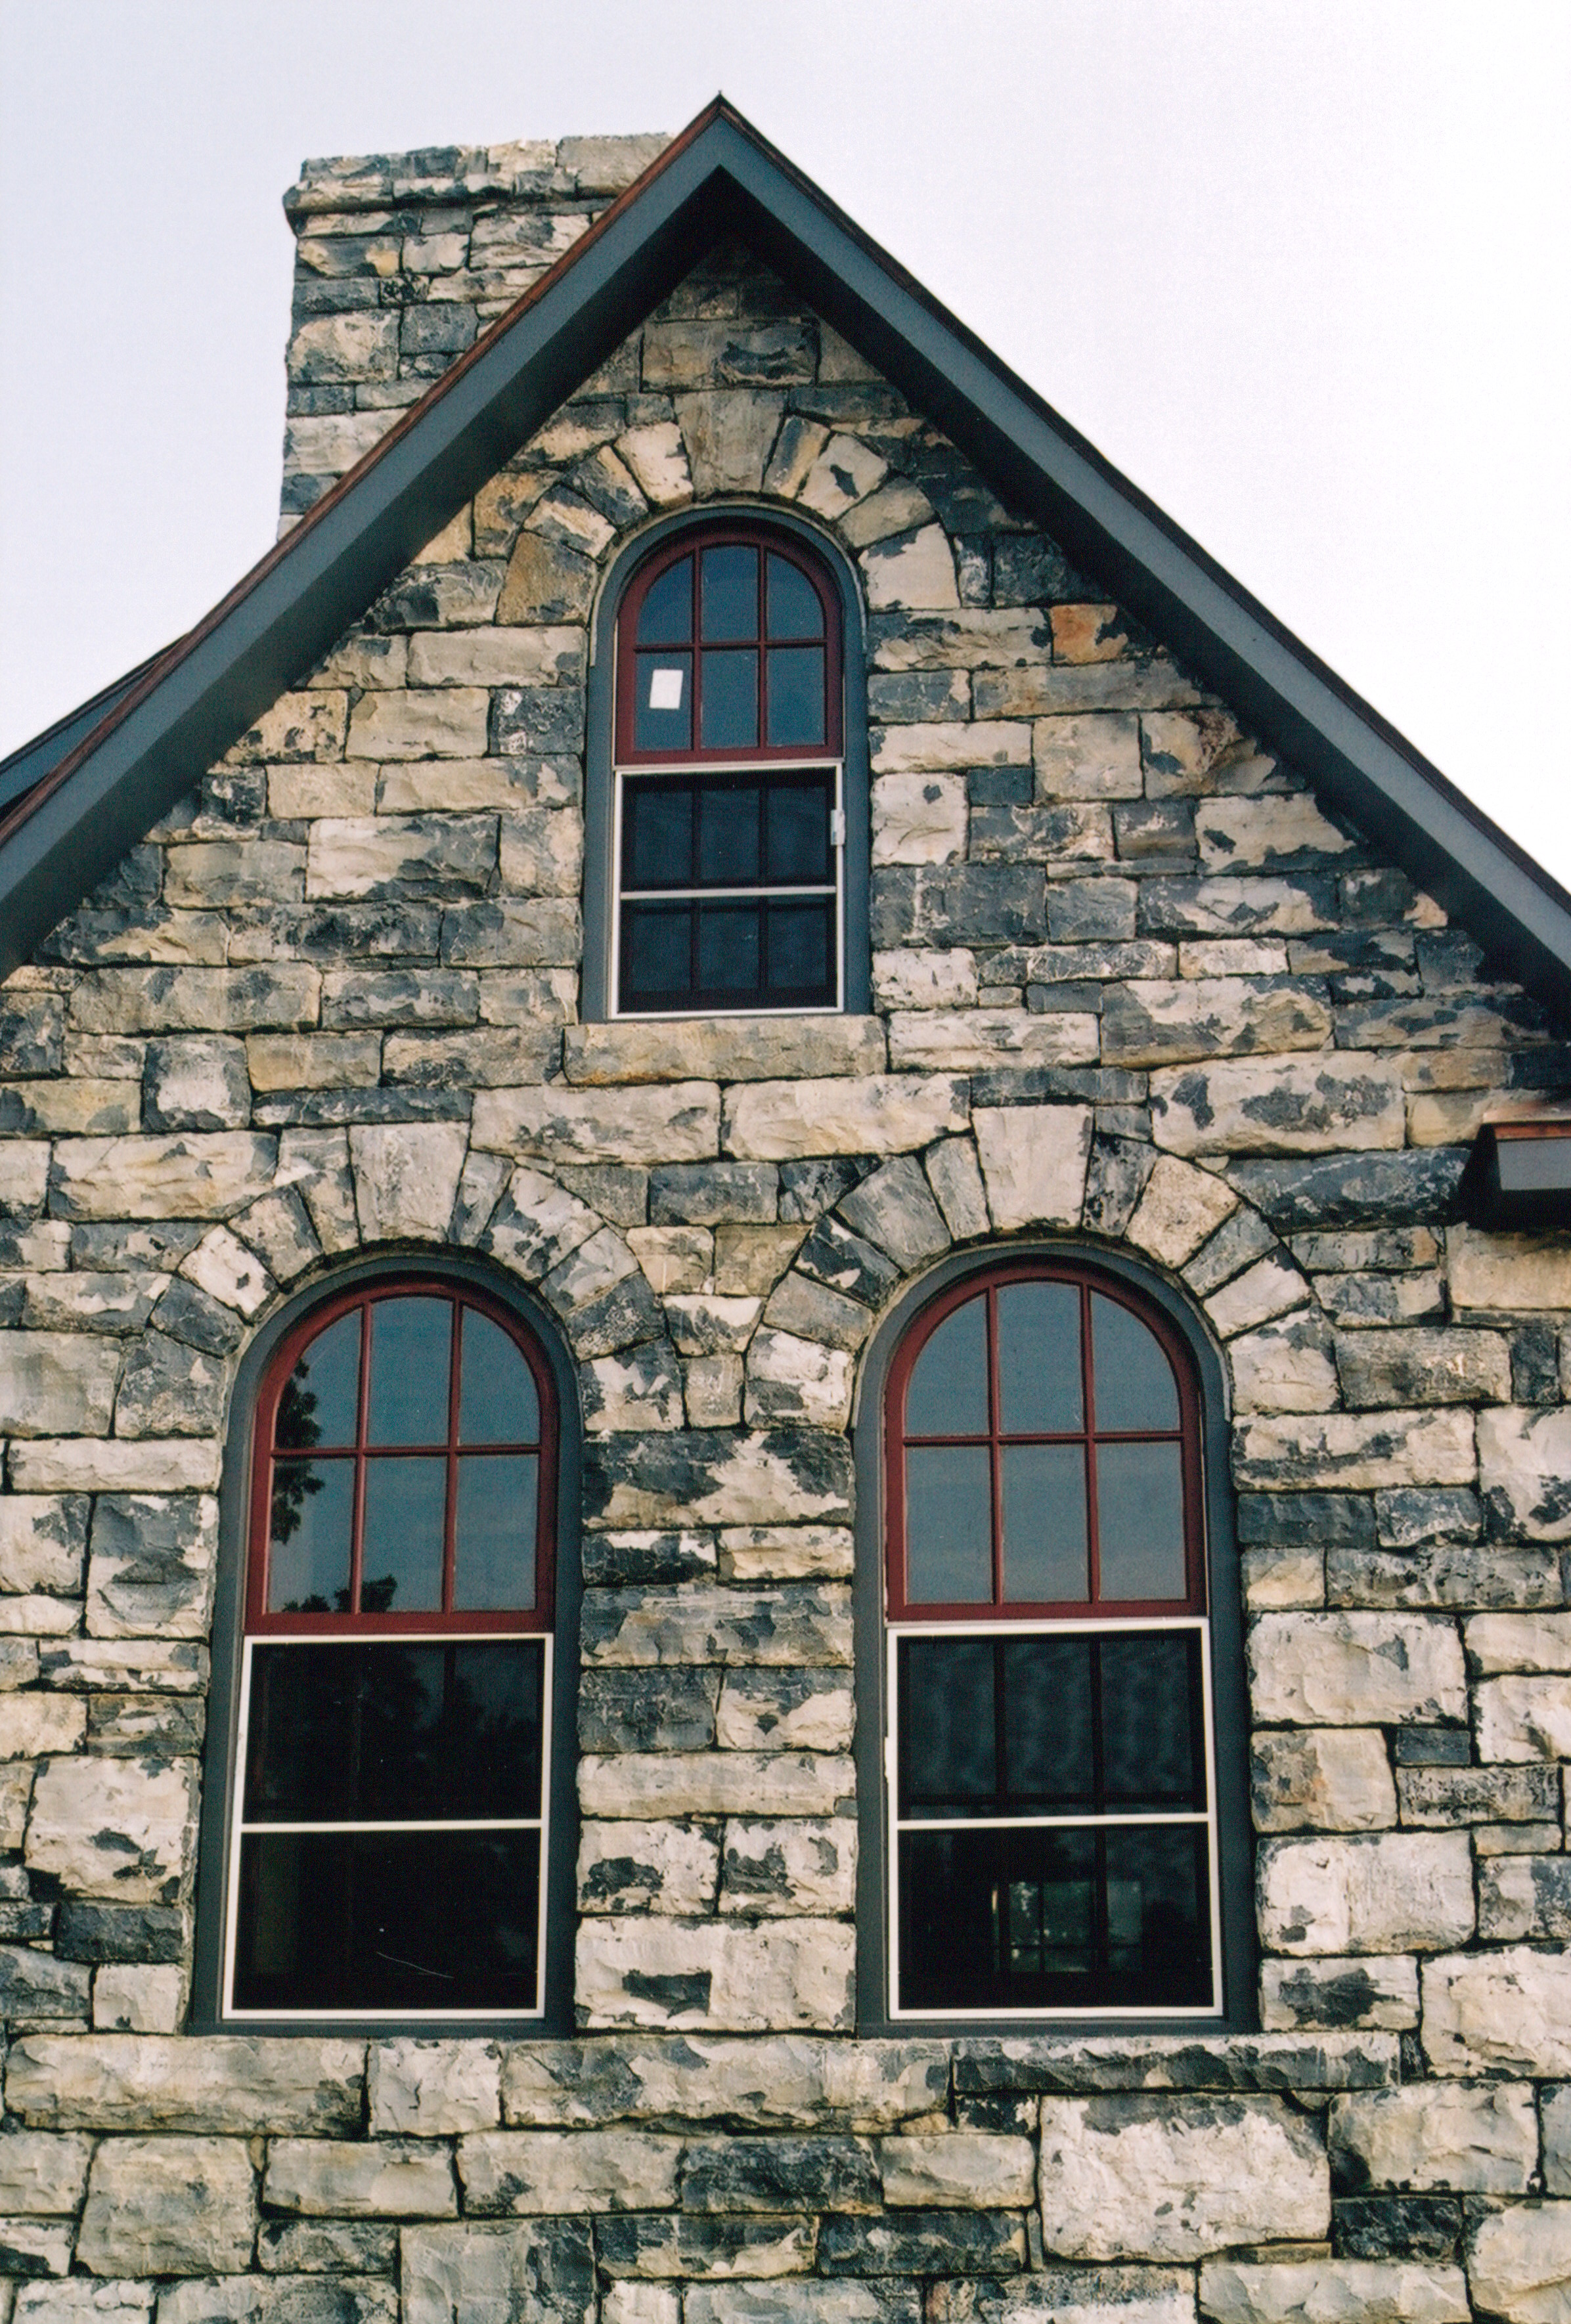 Stone Arched Windows Part 2 Handmade Houses With